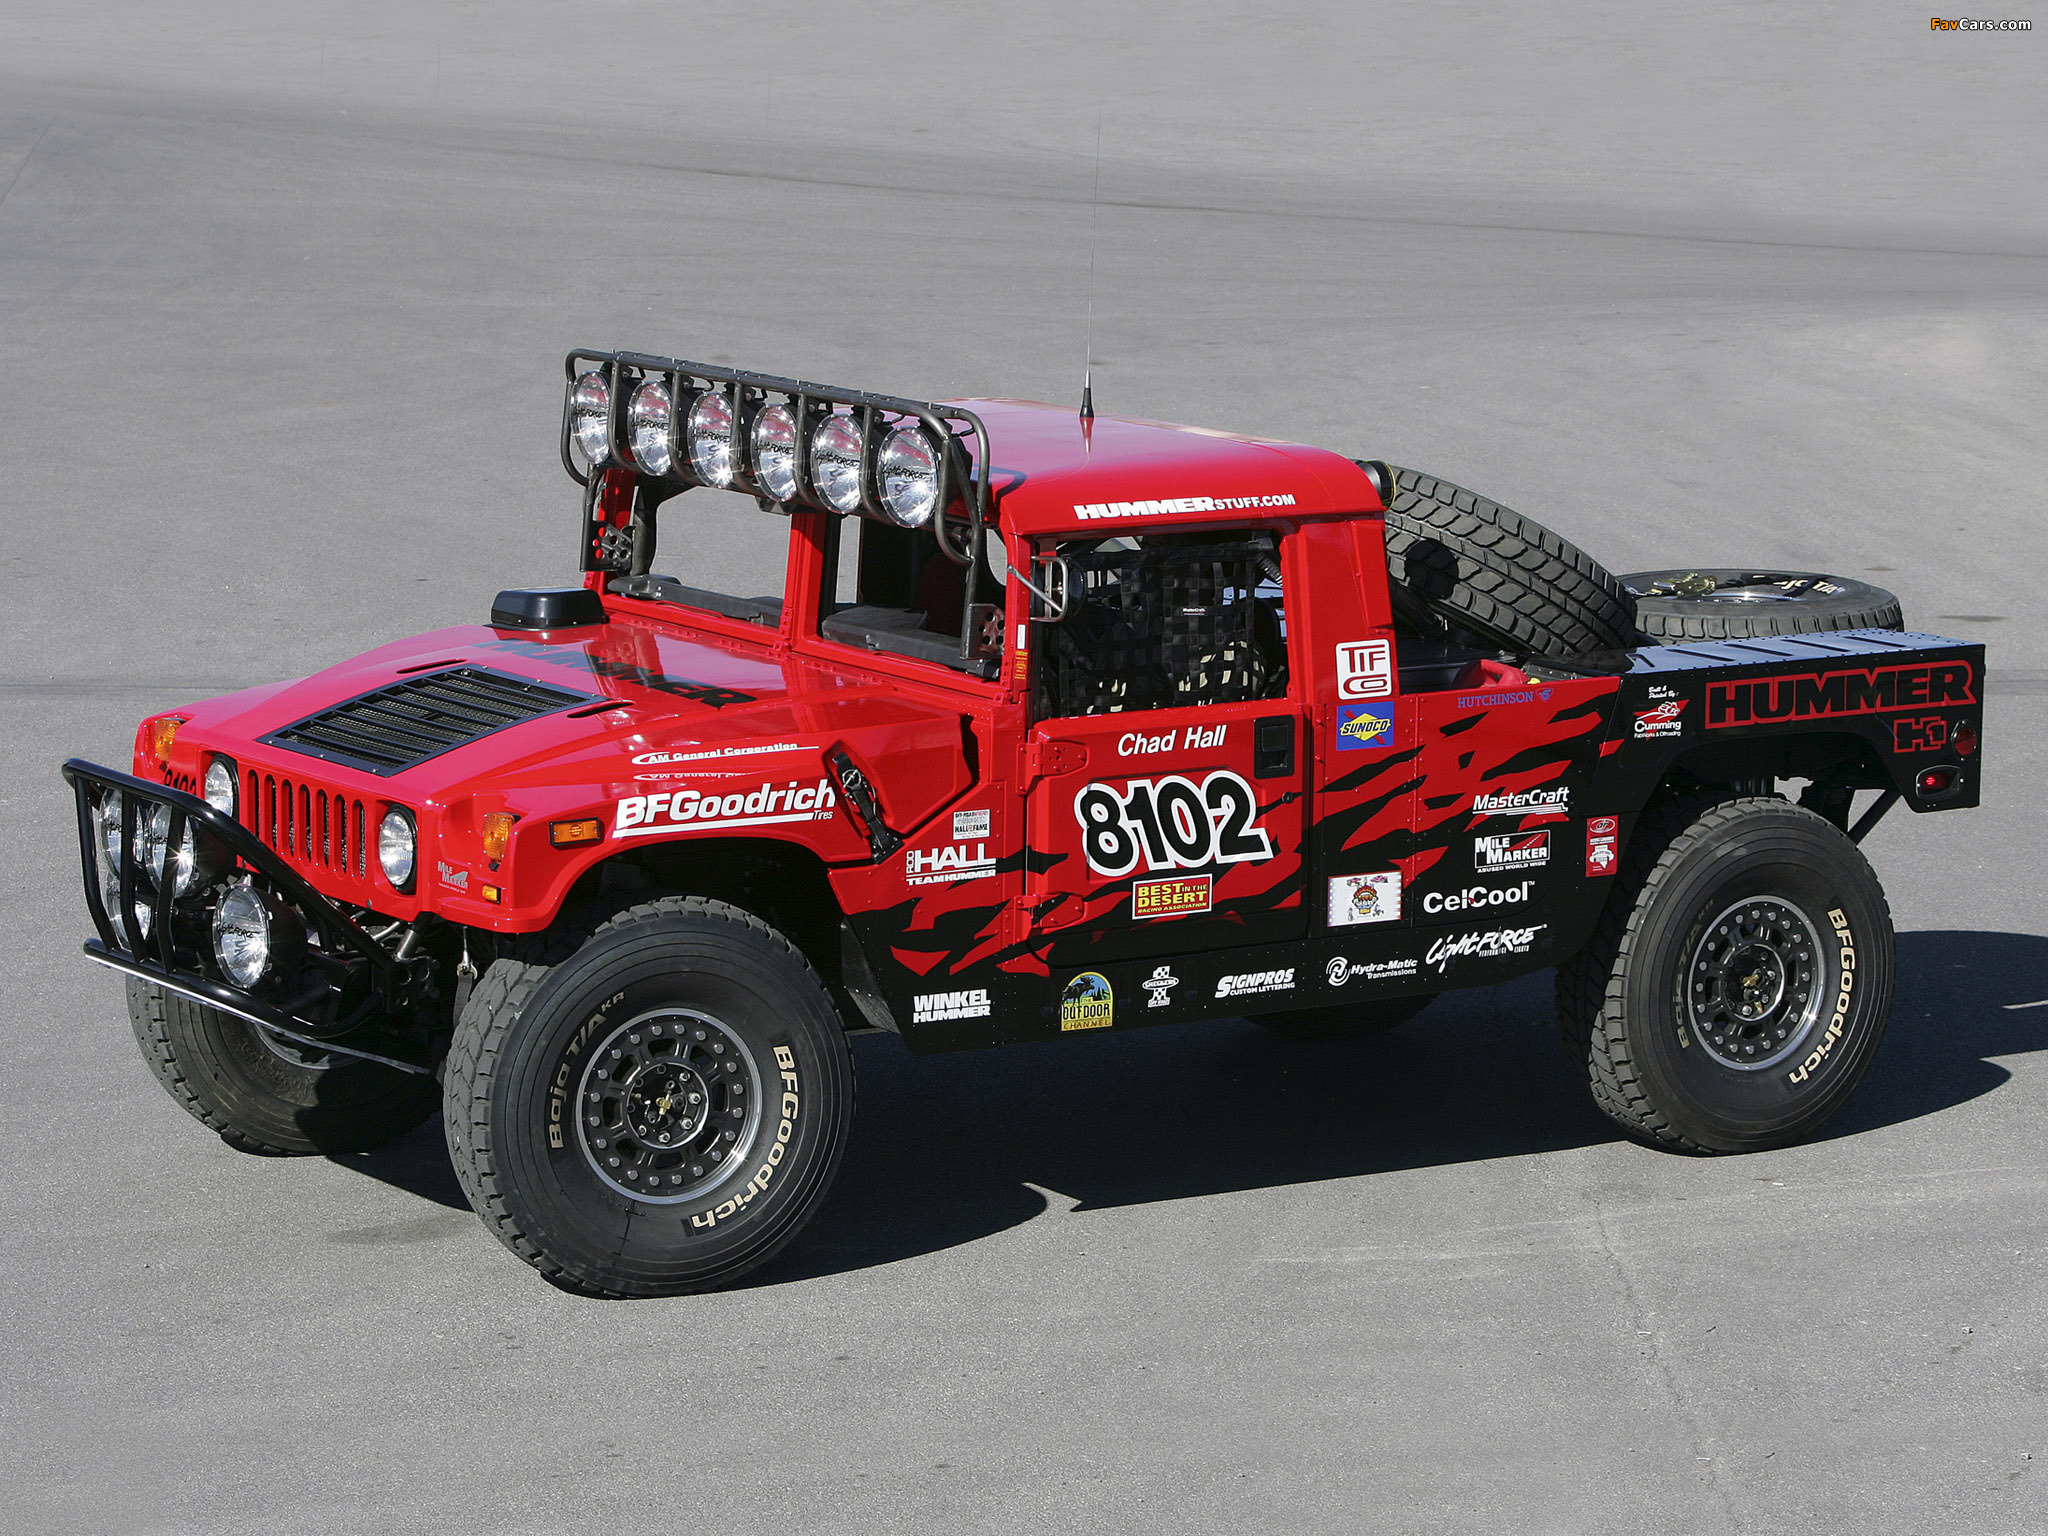 hummer truck images start 200 WeiLi Automotive Network